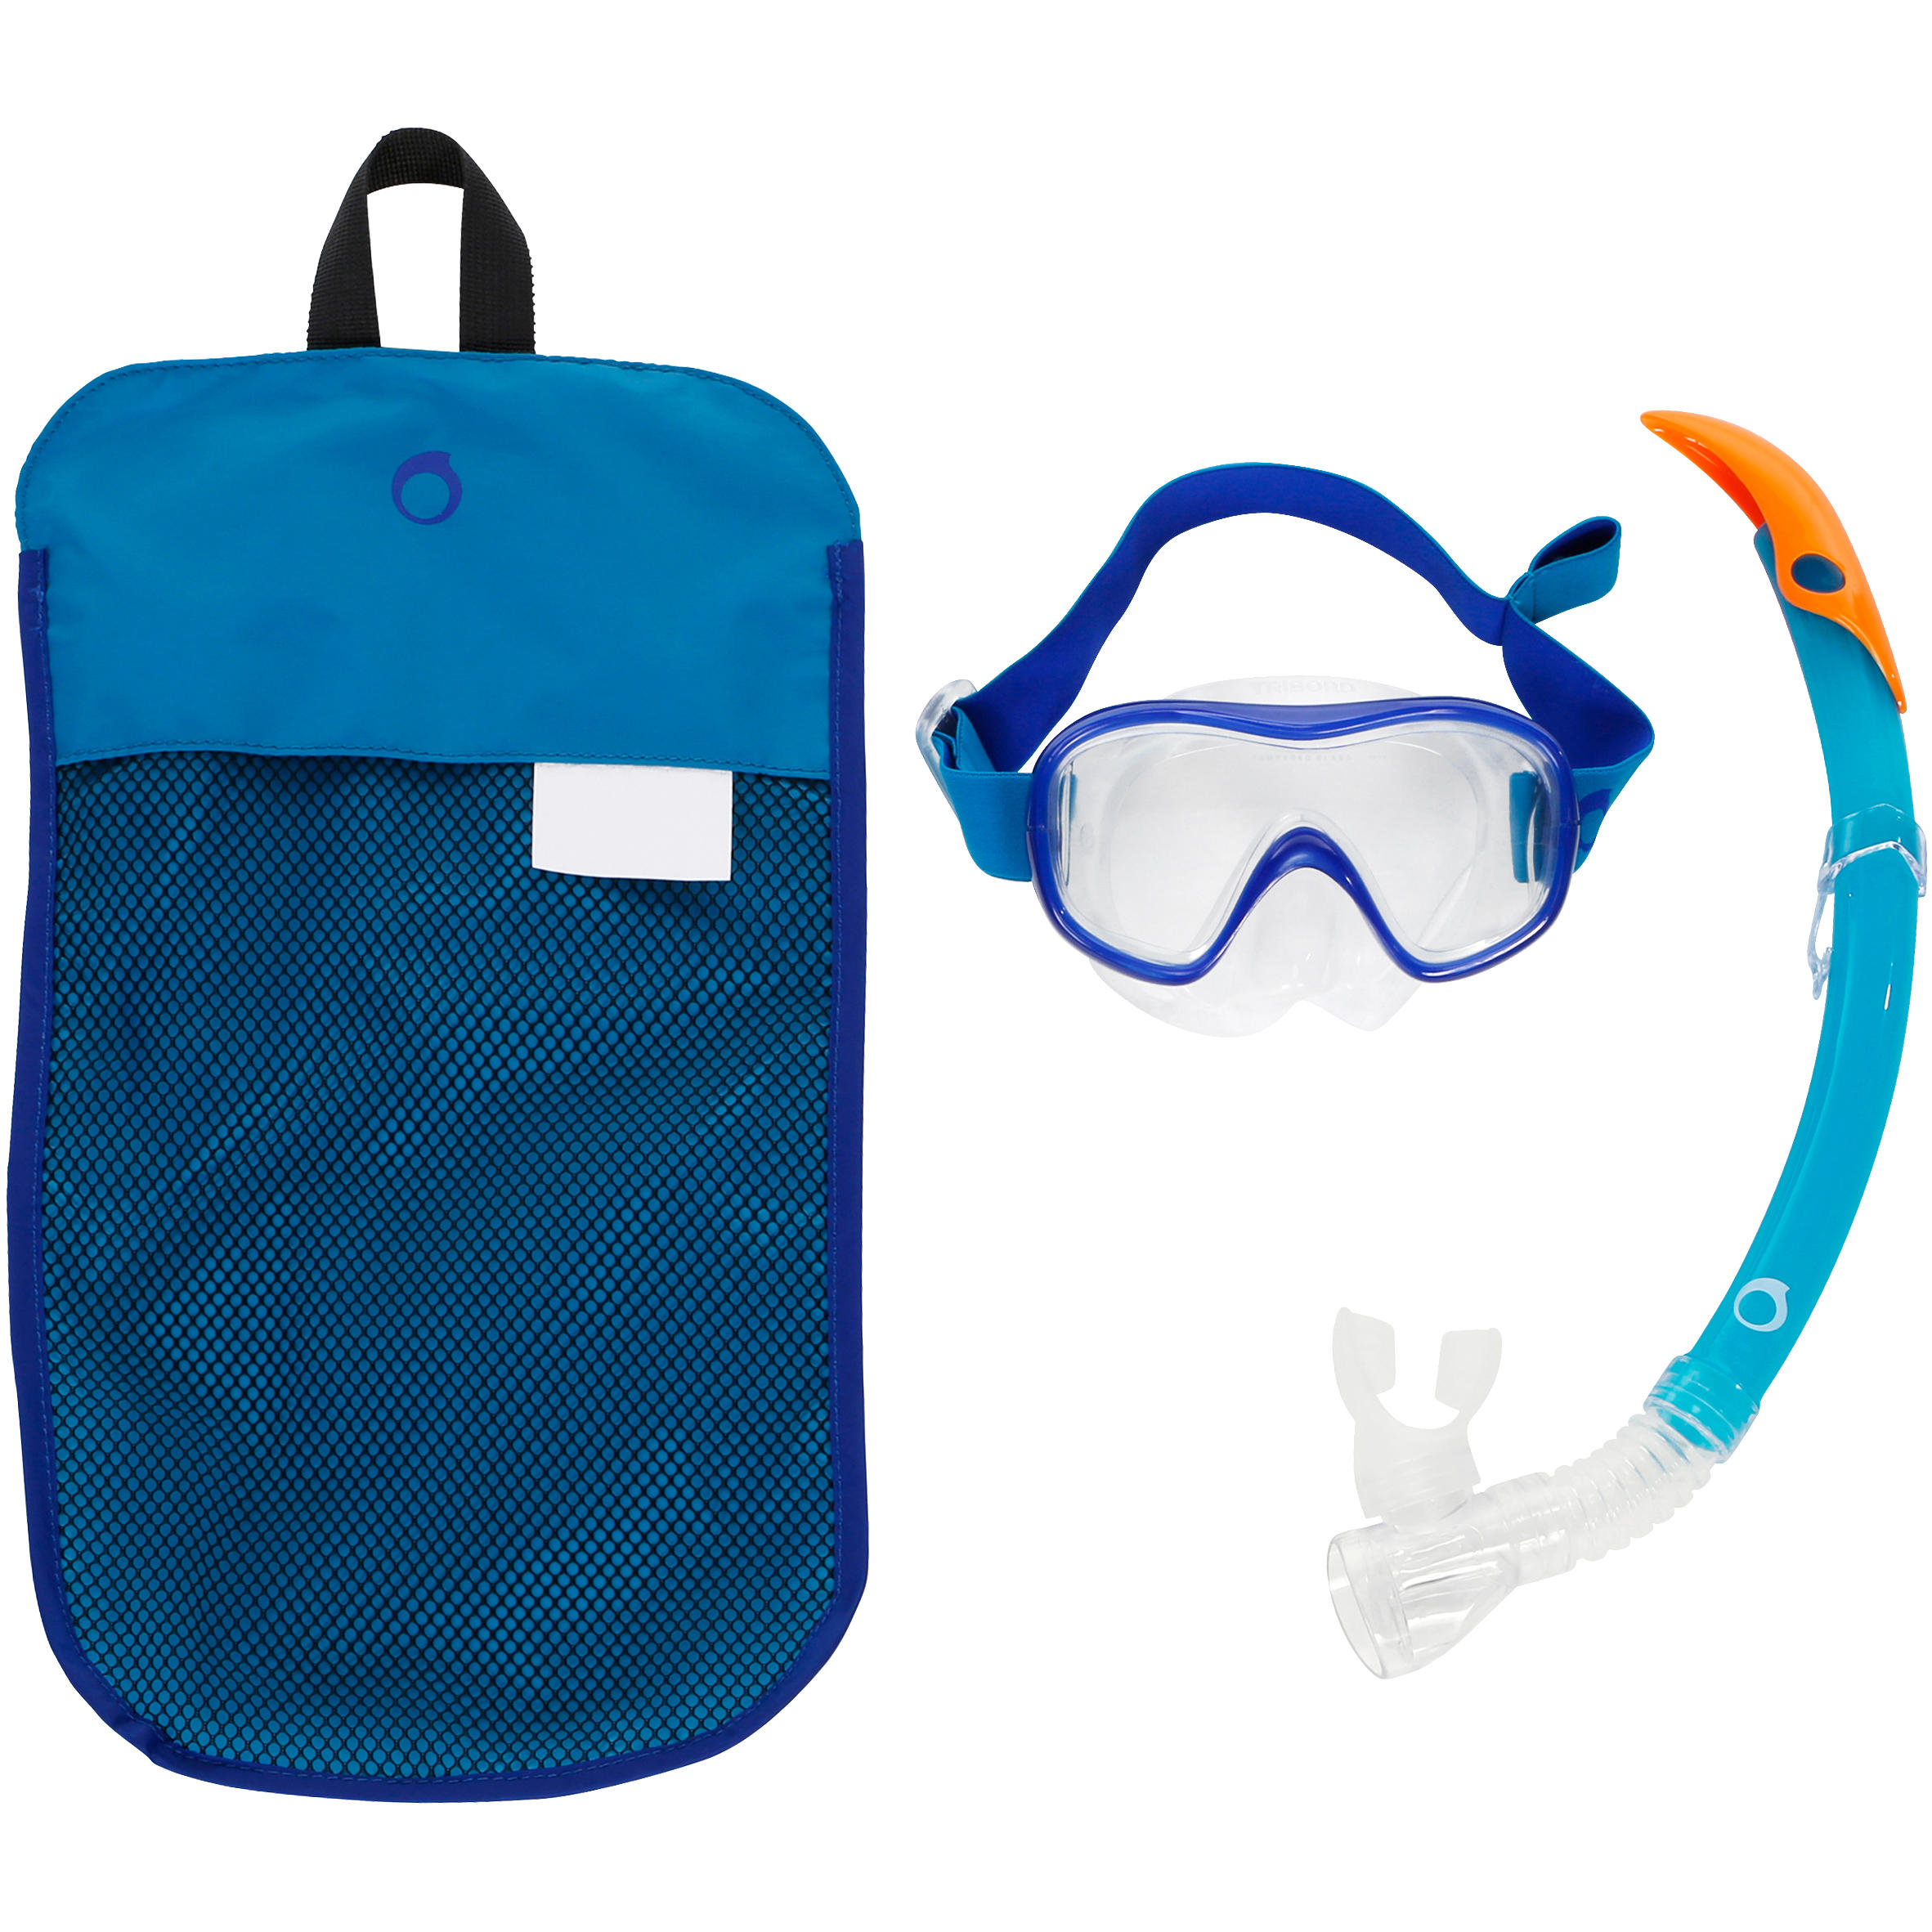 520 Adult Mask and Snorkel Snorkelling Set - Turquoise Blue